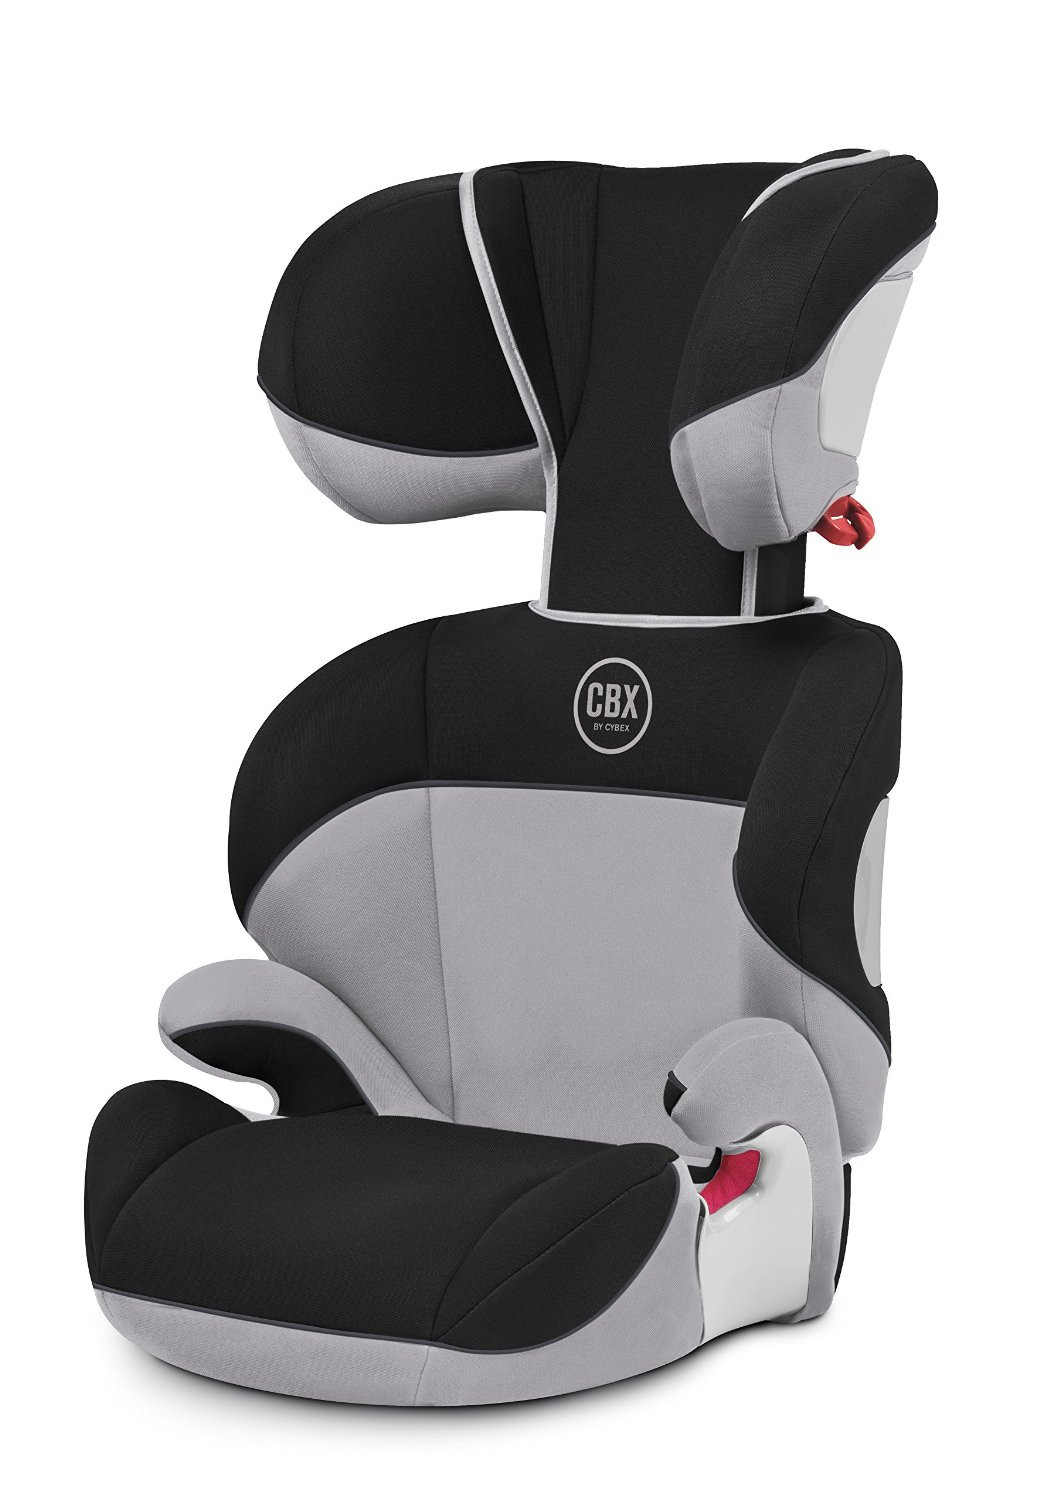 silla de coche cbx grupo 2 3 cybex opiniones. Black Bedroom Furniture Sets. Home Design Ideas